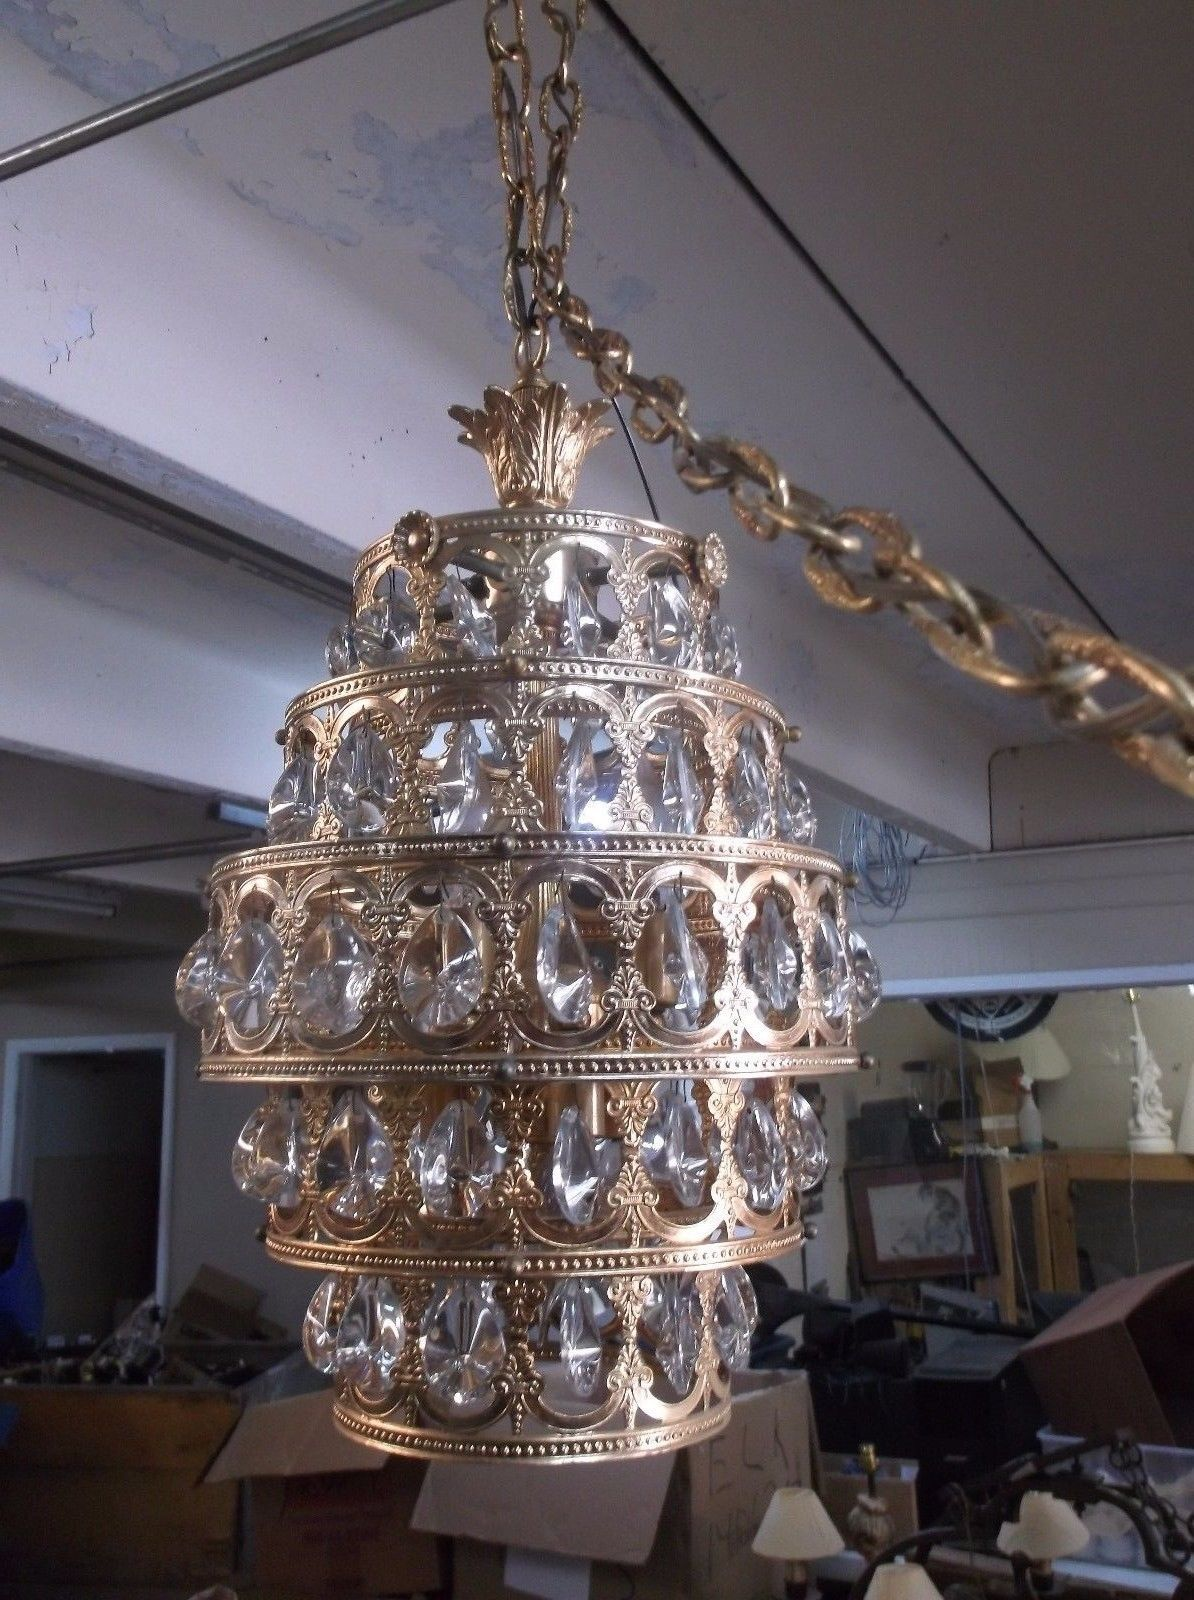 Antiques gifts antique gold five tier glass crystal chandelier antiques gifts antique gold five tier glass crystal chandelier king louis style collectors arubaitofo Gallery